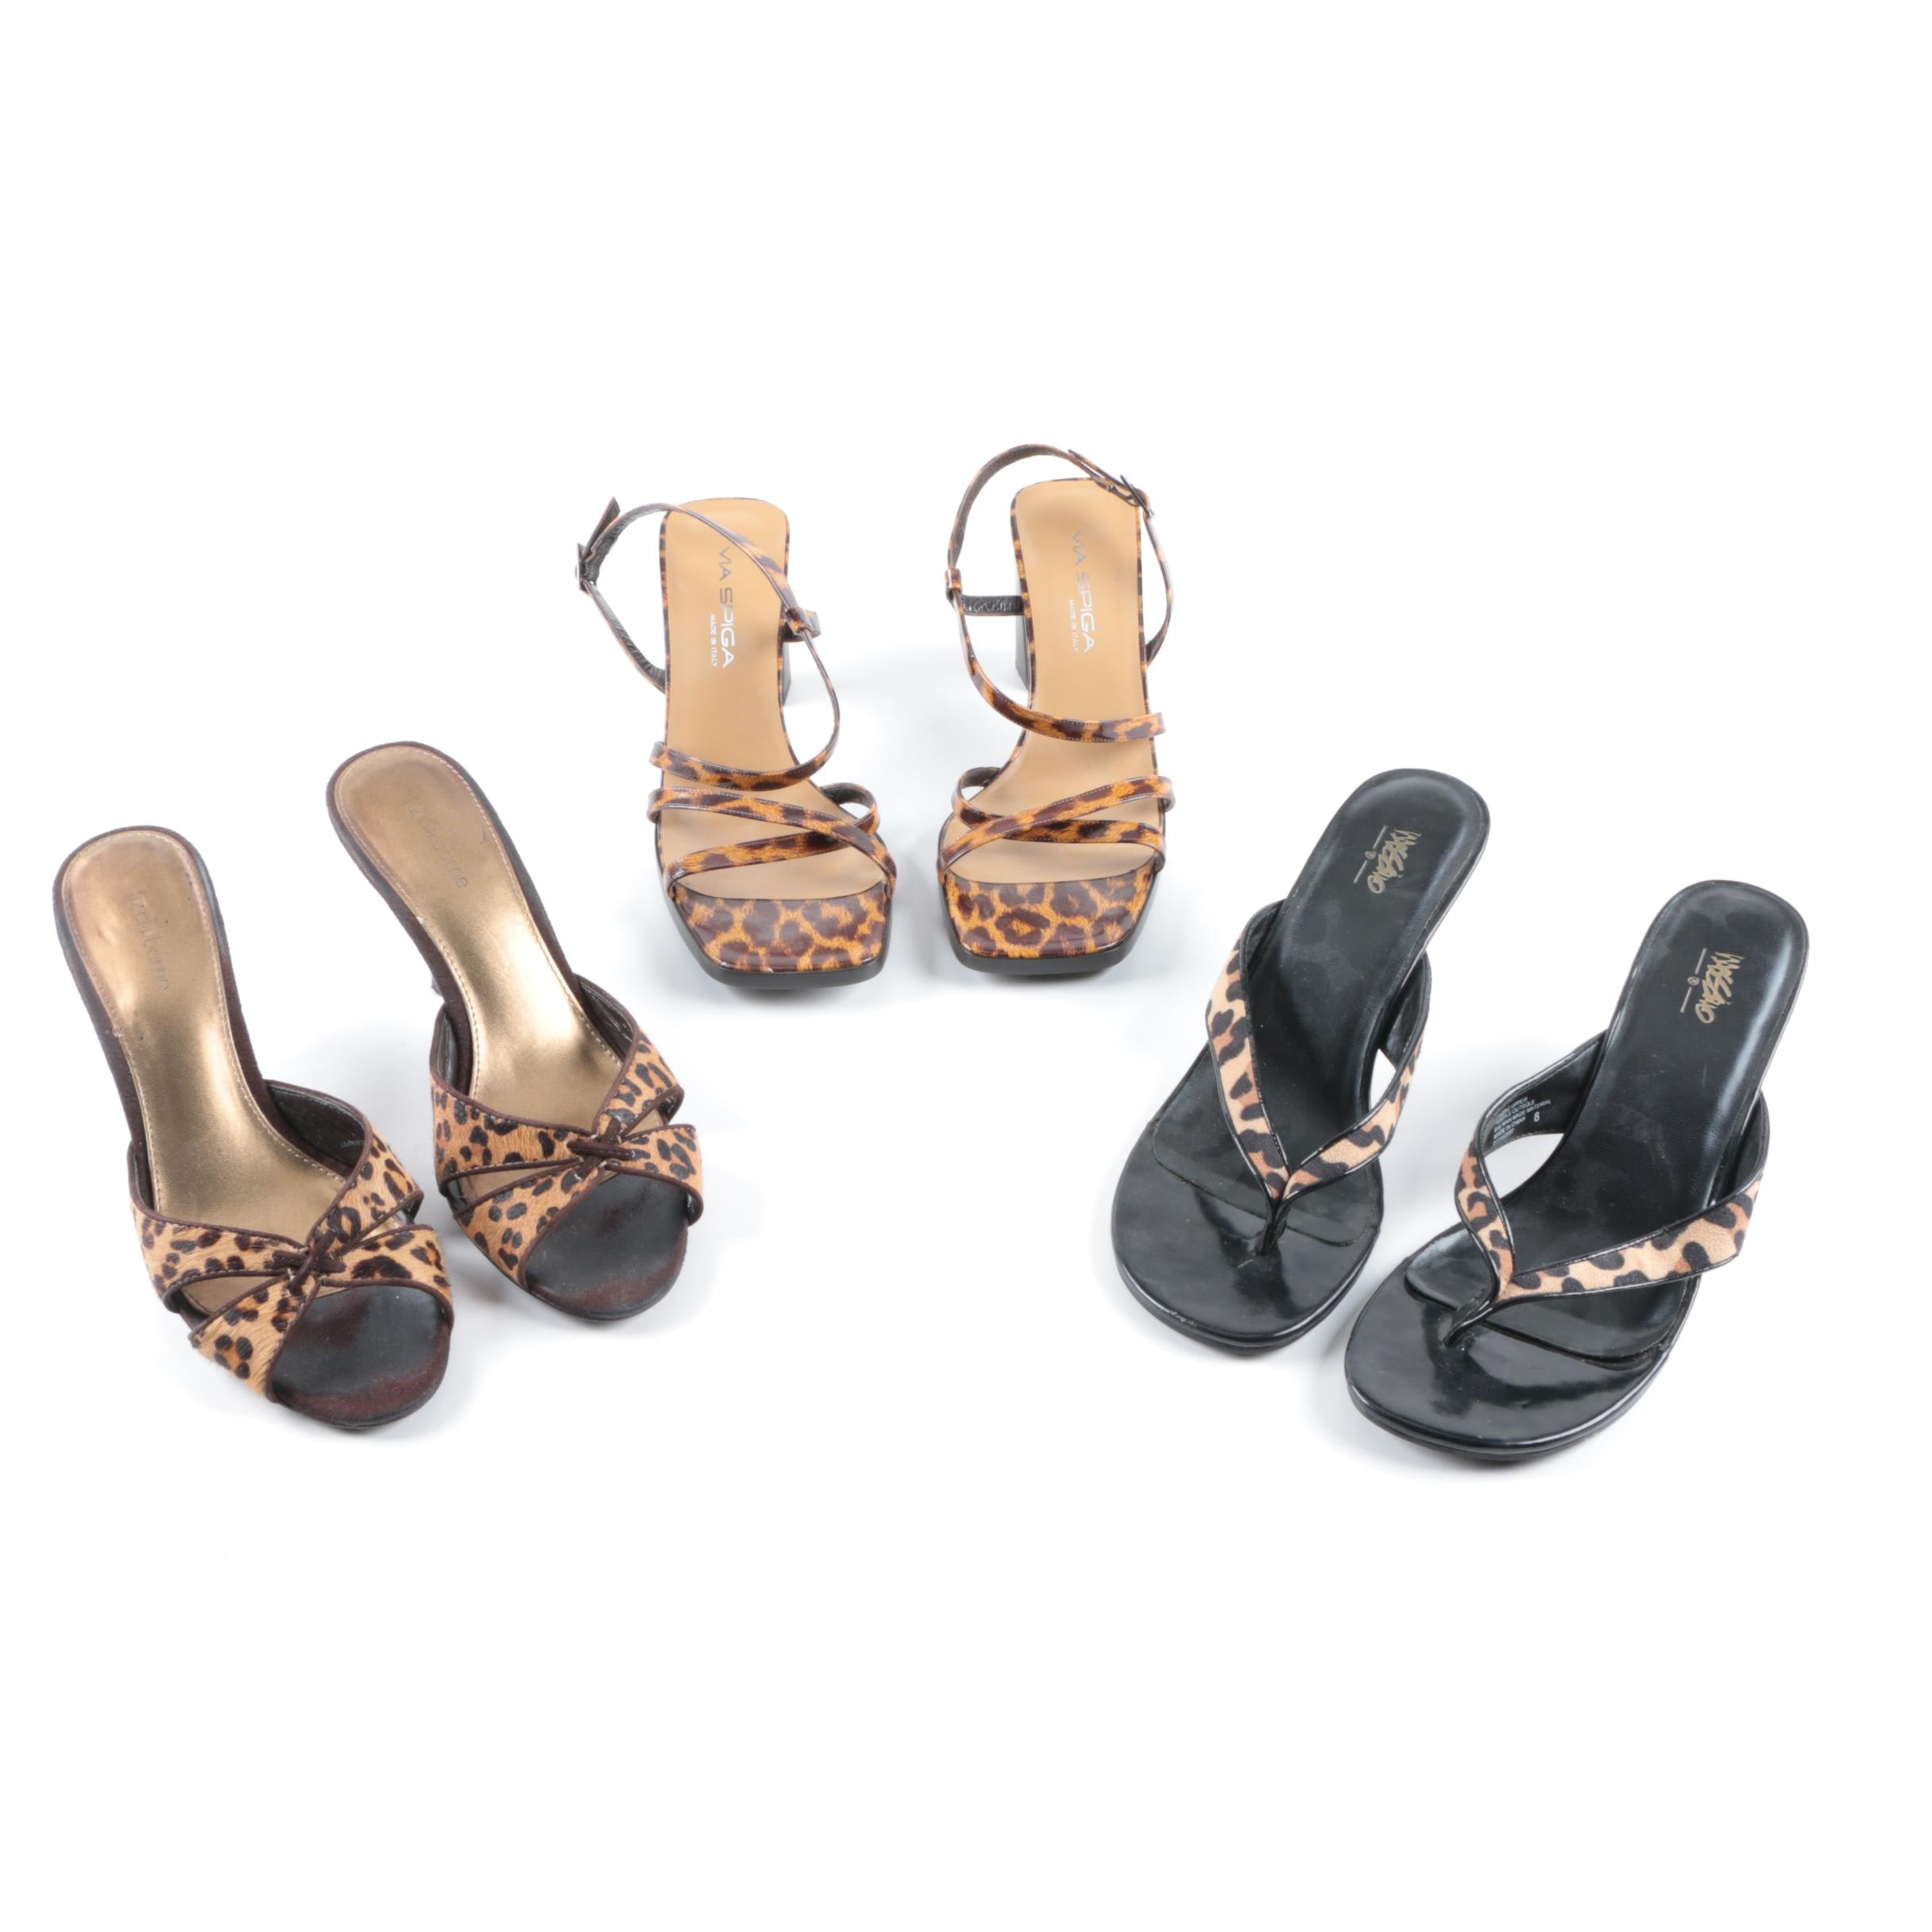 Women's High Heeled Sandals Including Liz Claiborne